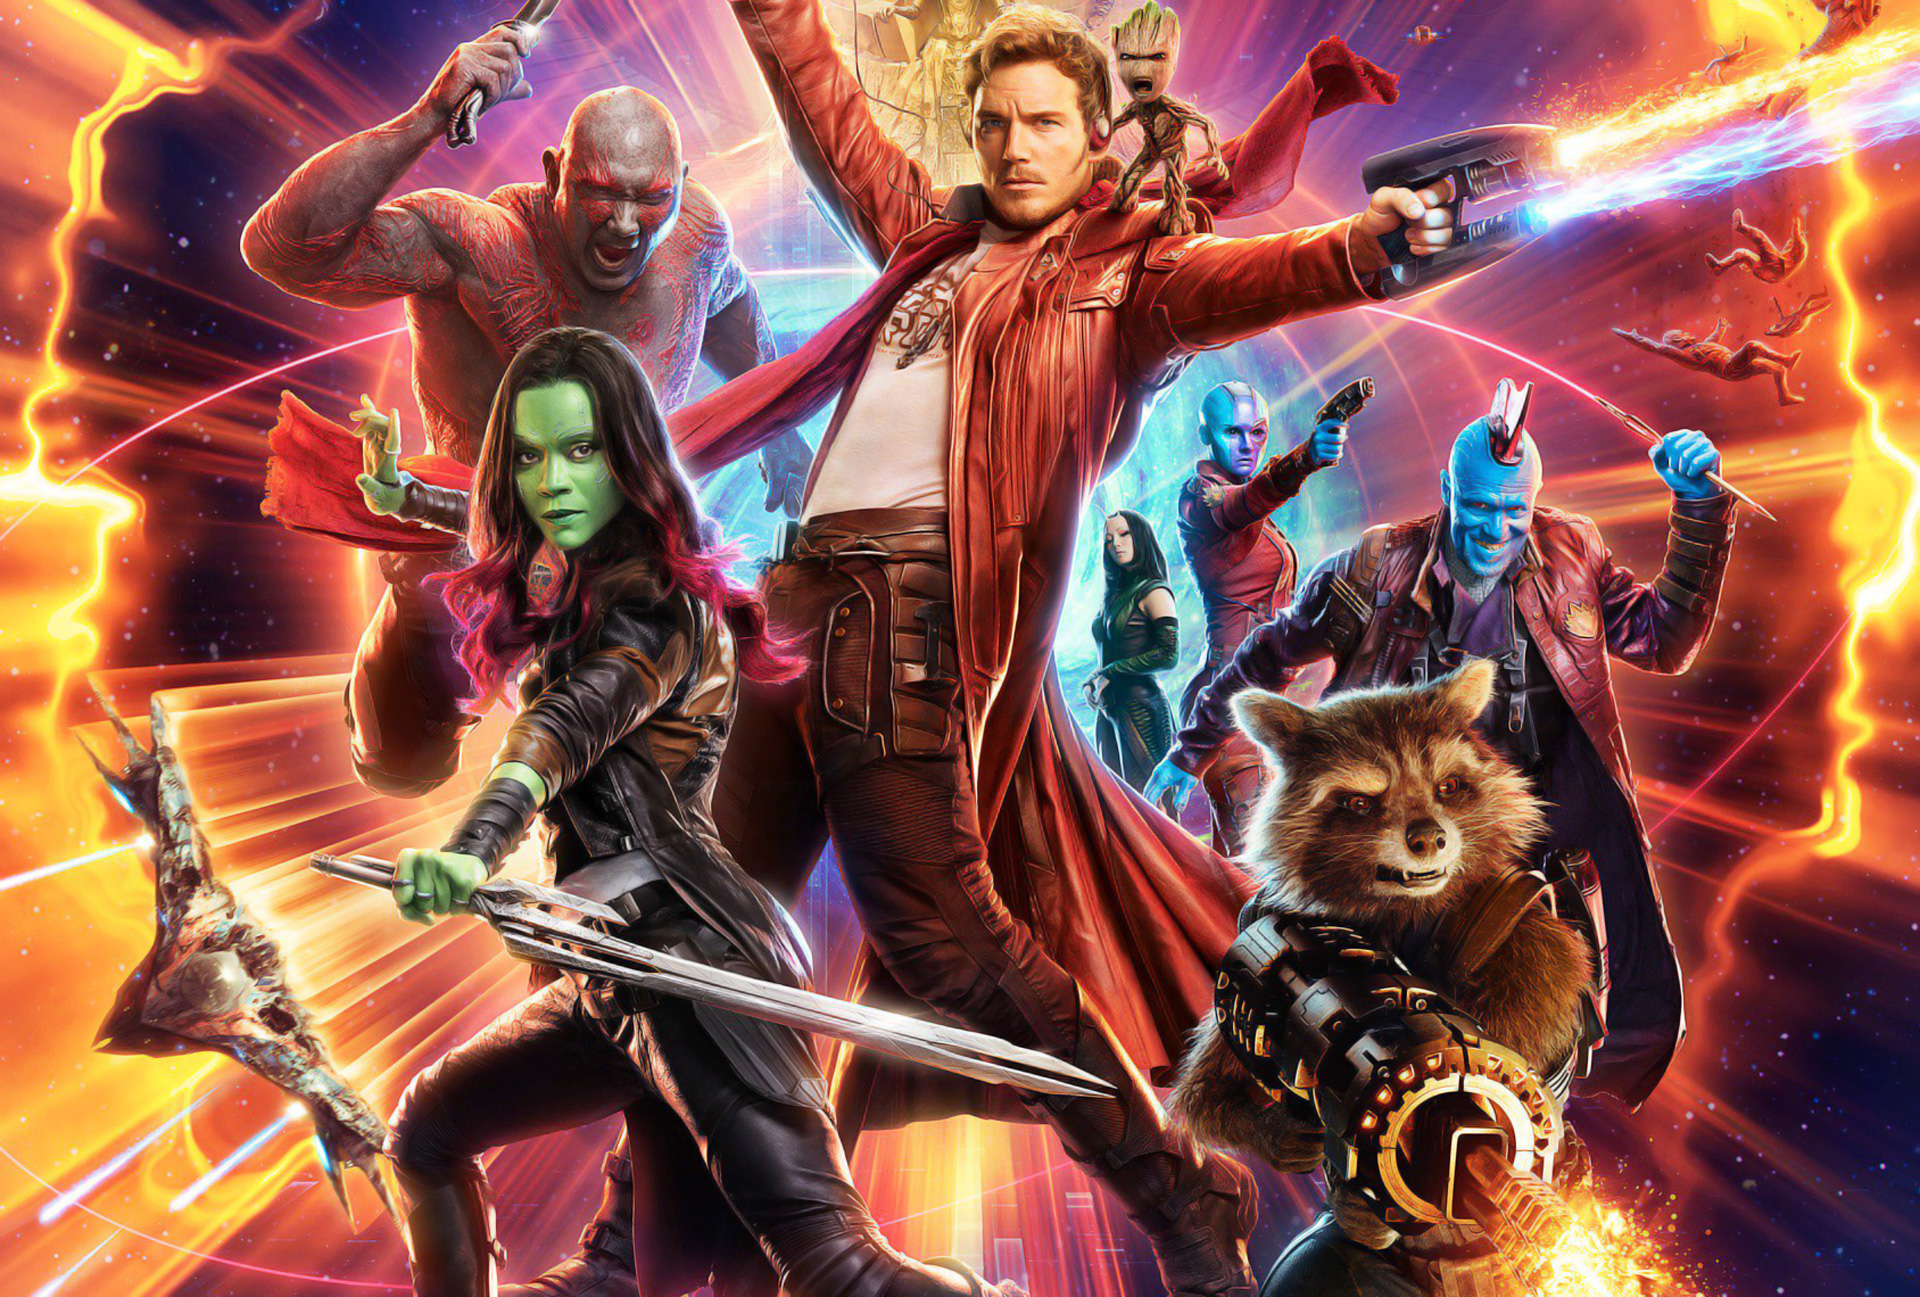 Guardians Of The Galaxy 2 Hd Movies 4k Wallpapers Images Backgrounds Photos And Pictures